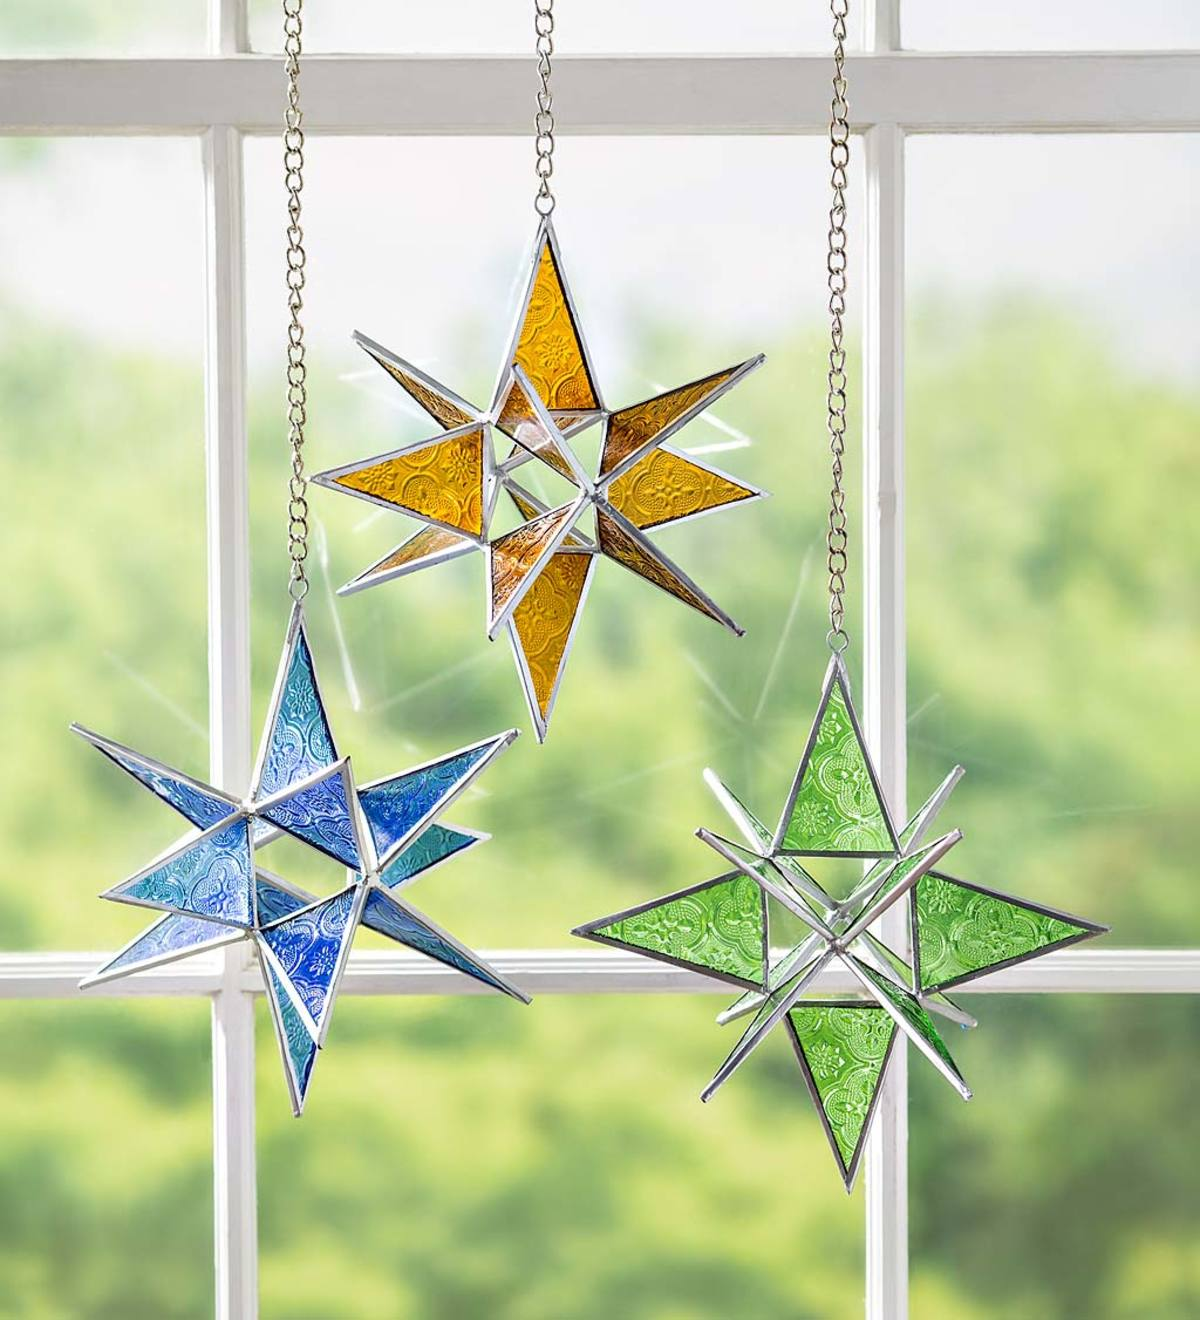 Hanging Stained Glass Holiday Star